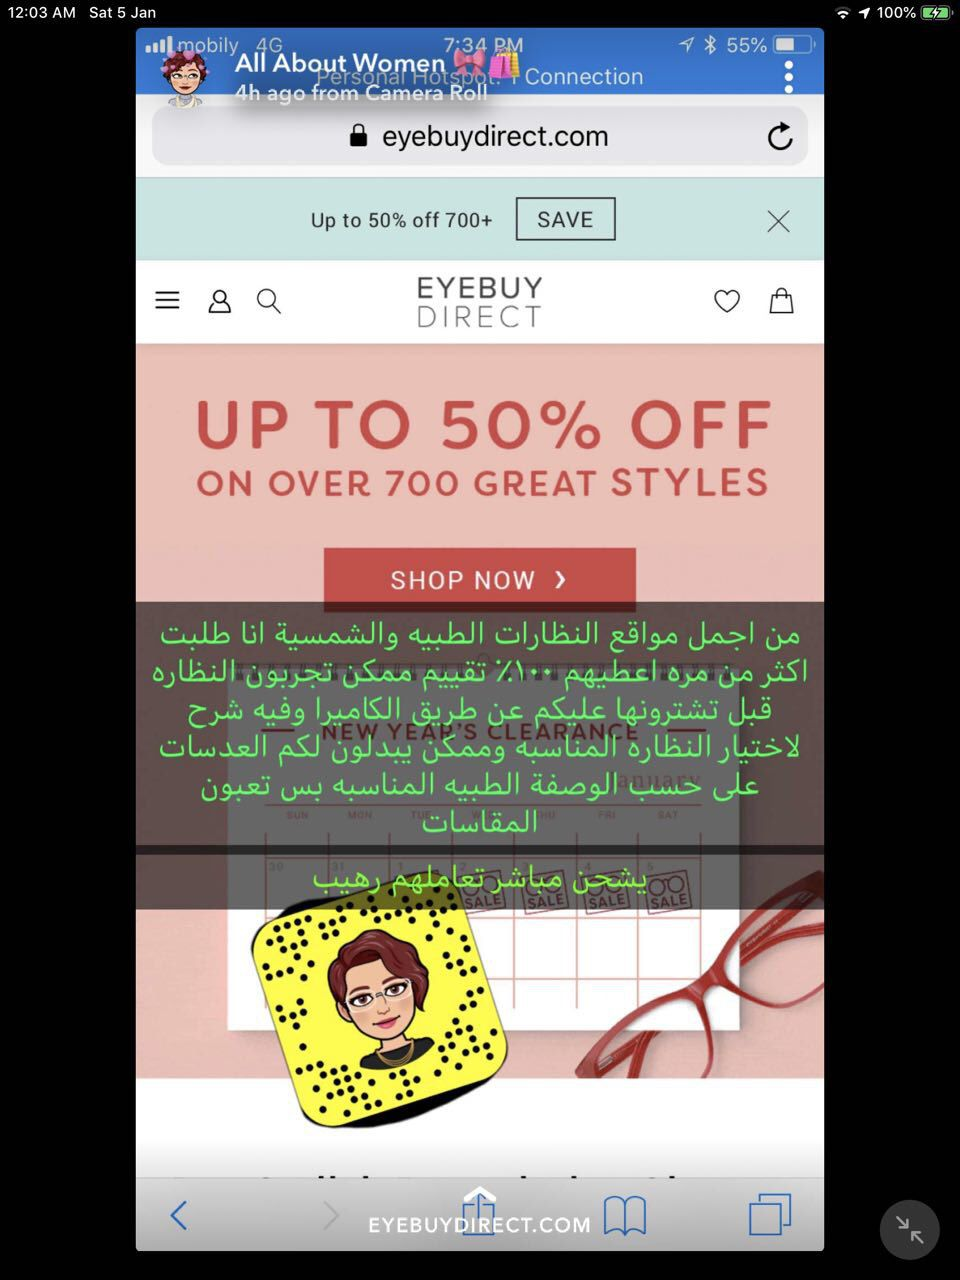 Pin by مها on Skin care mask Skin care mask, Life